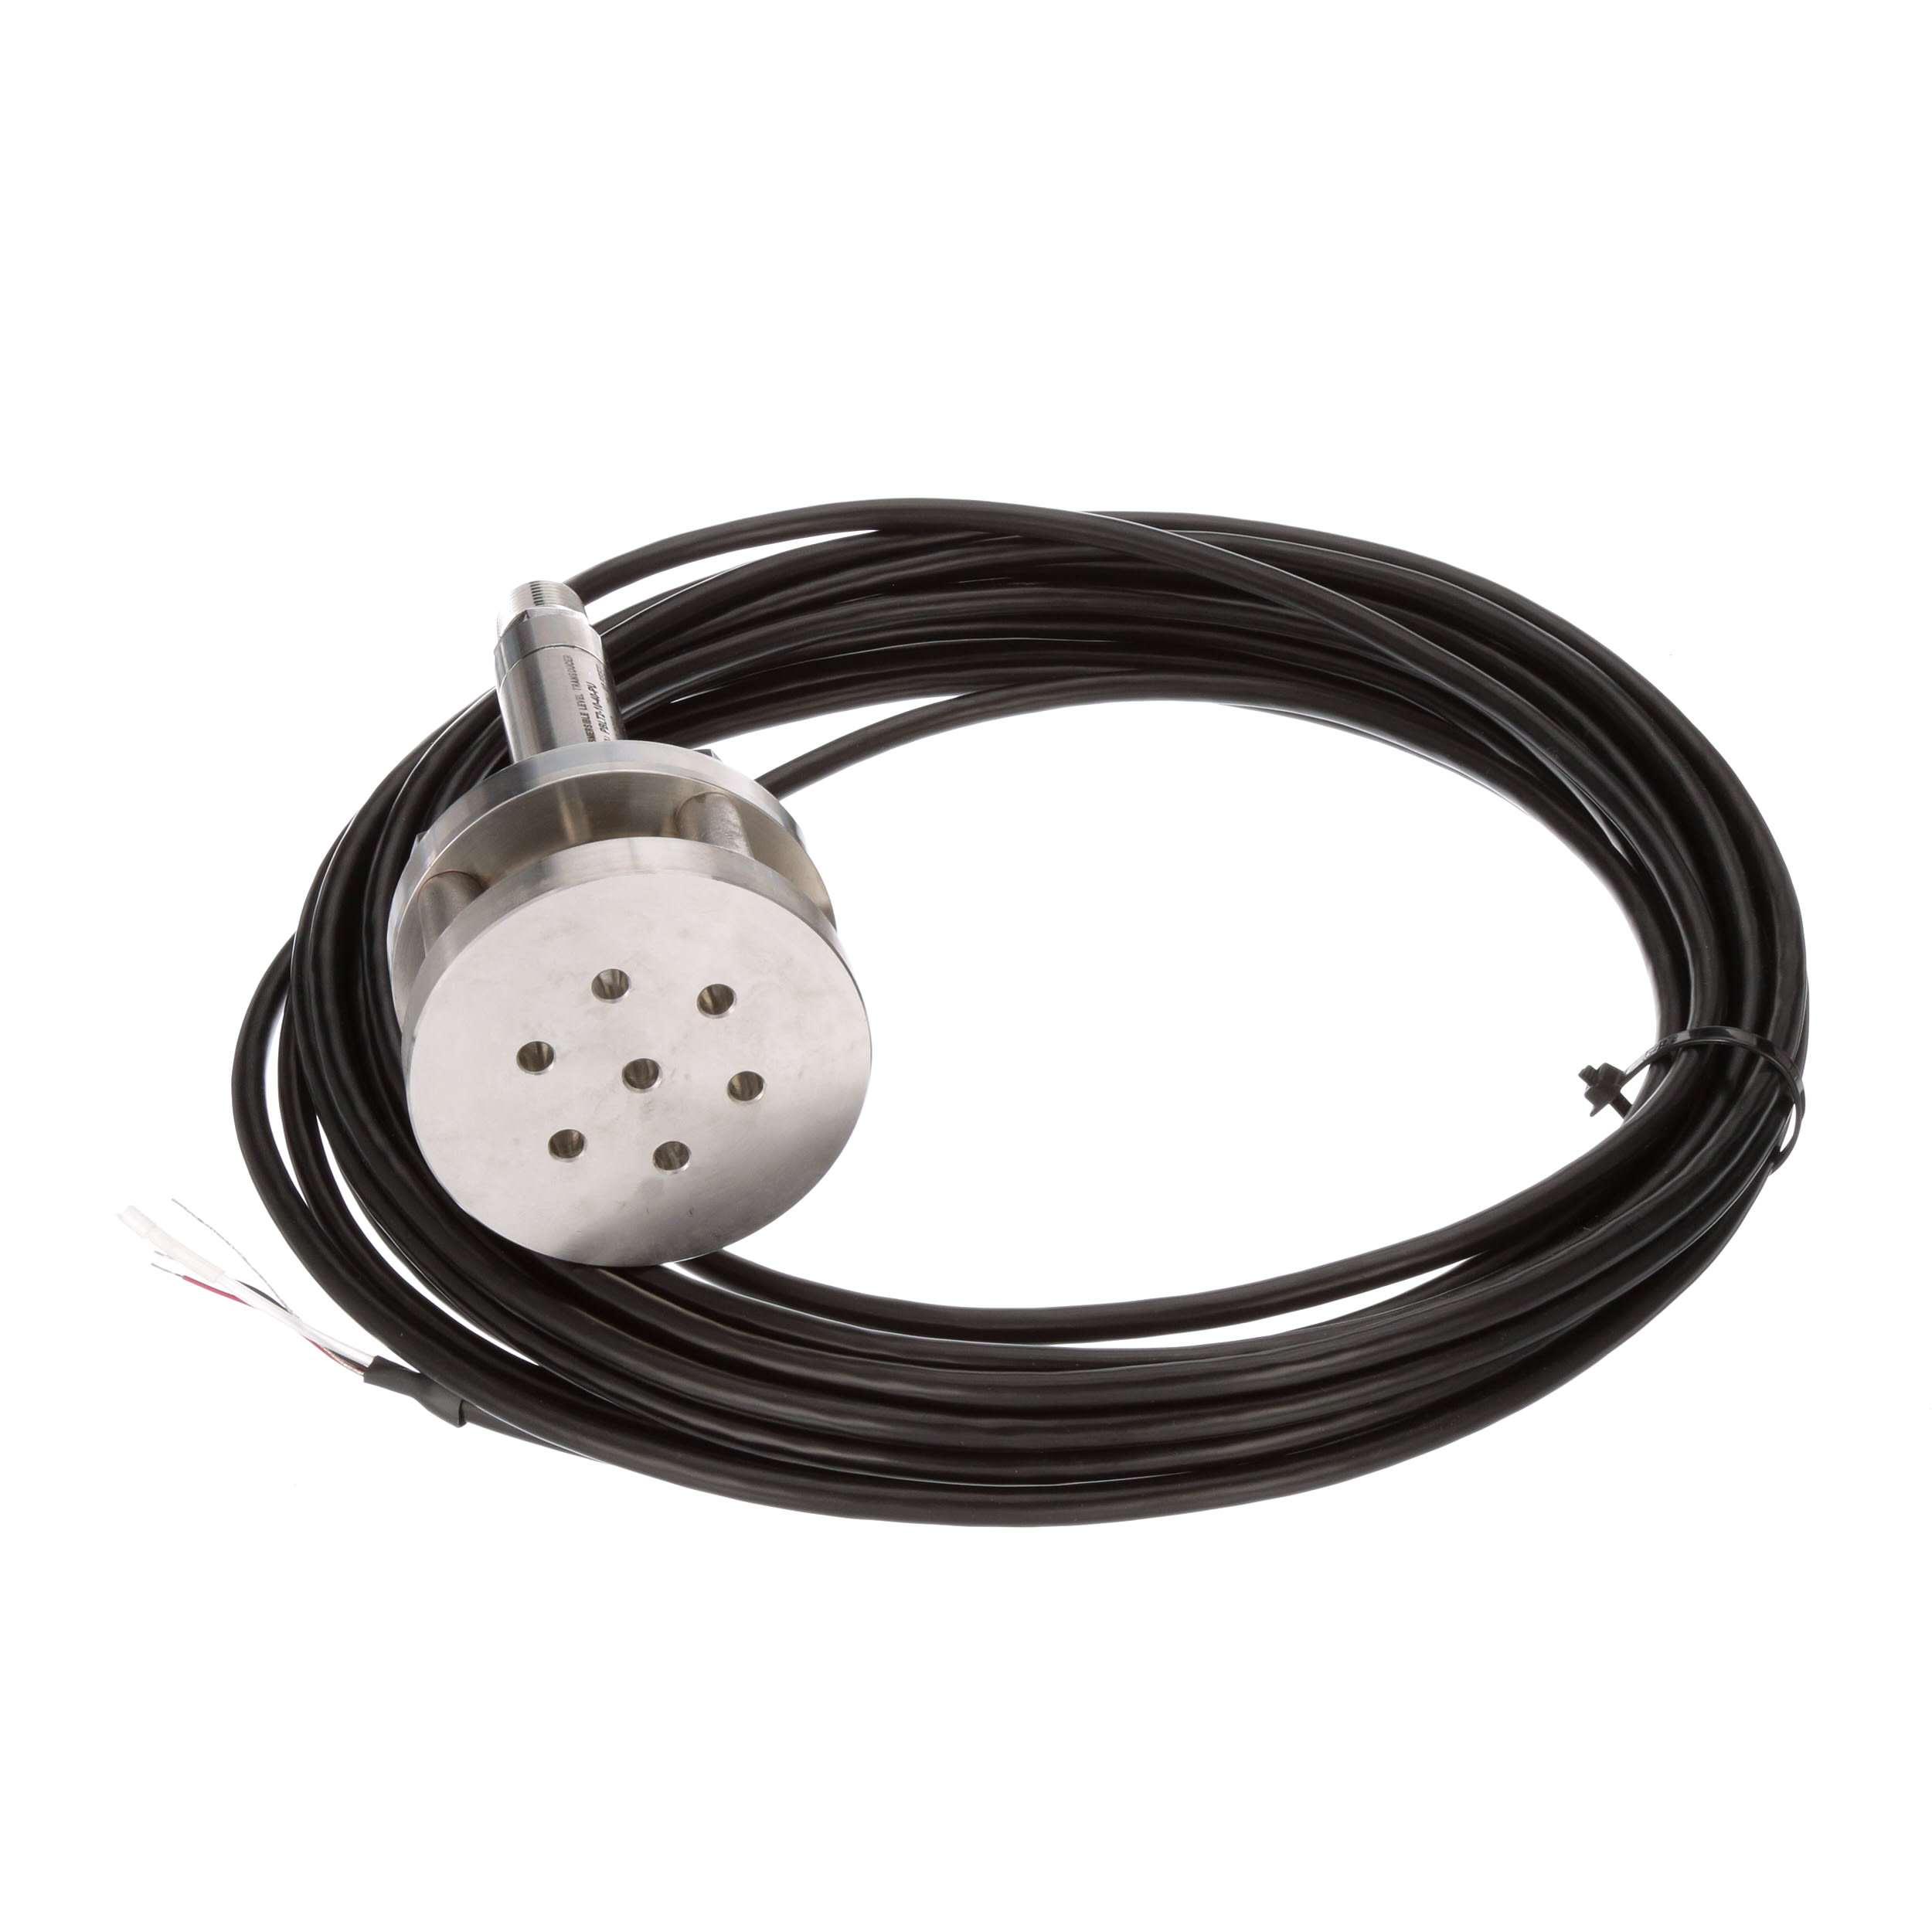 40 ft Polyurethane Cable Dwyer Series SBLT2 Lightning /& Surge Protected Submersible Level Transmitter 10 psi Sensor